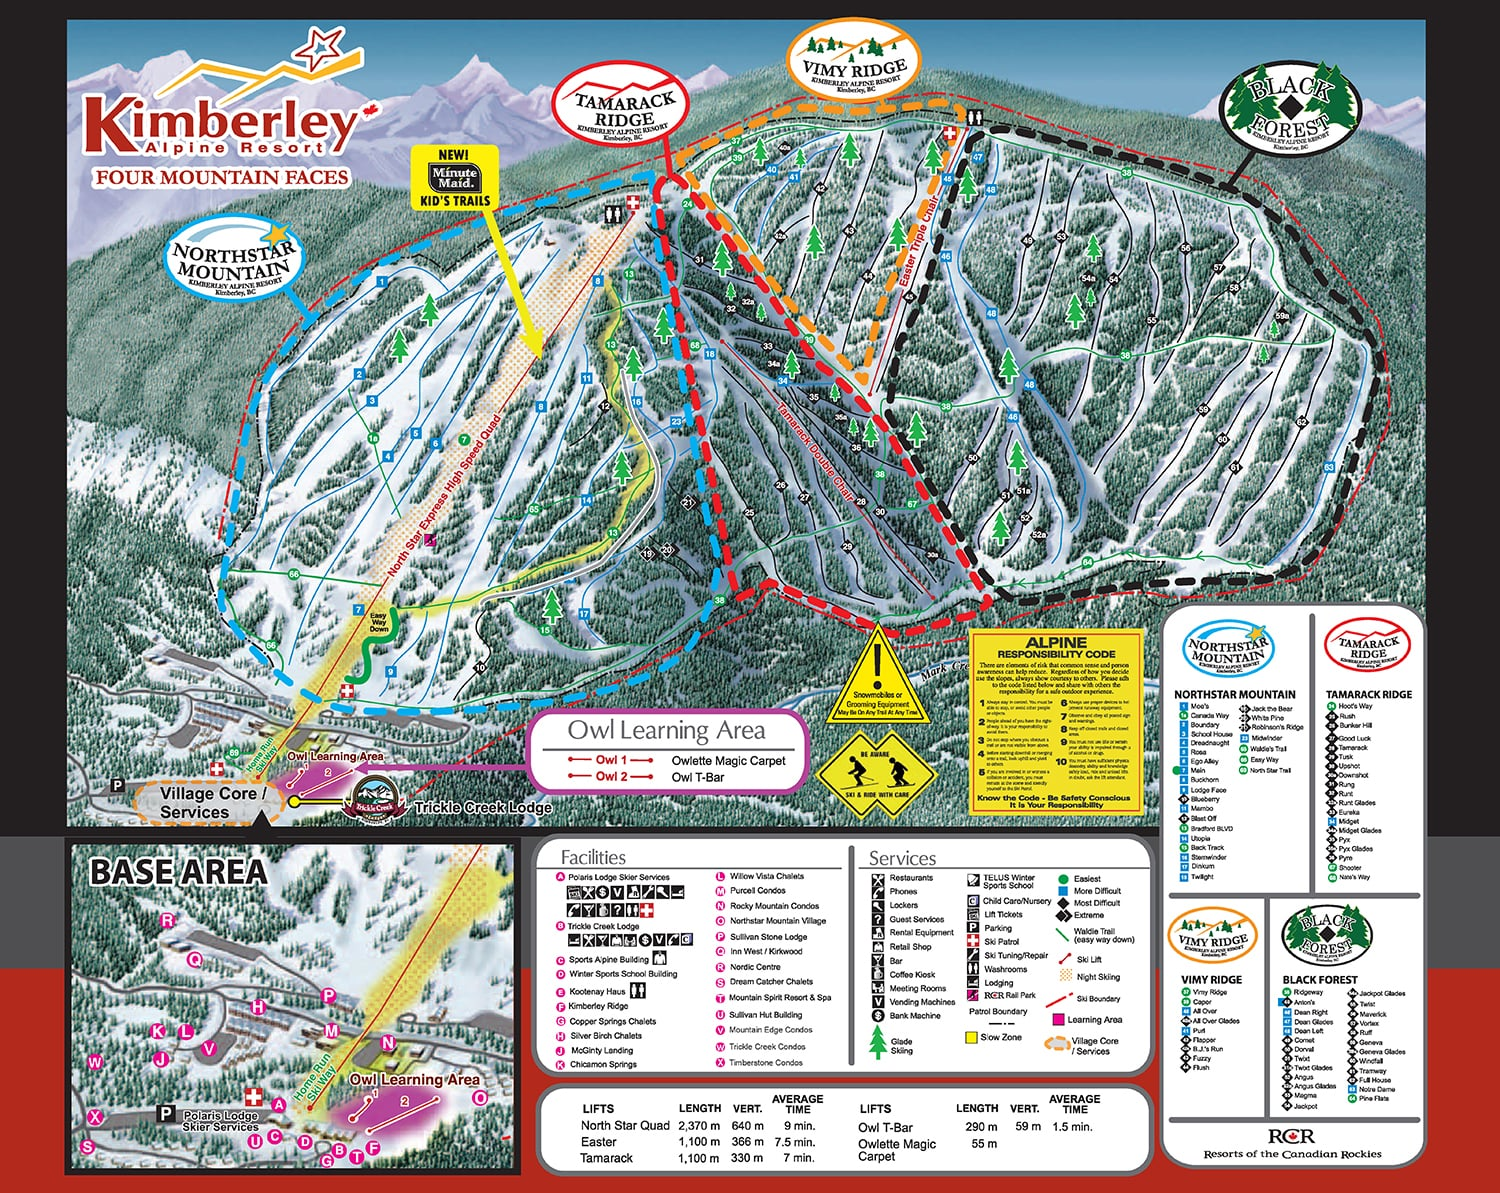 kimberley piste map / trail map